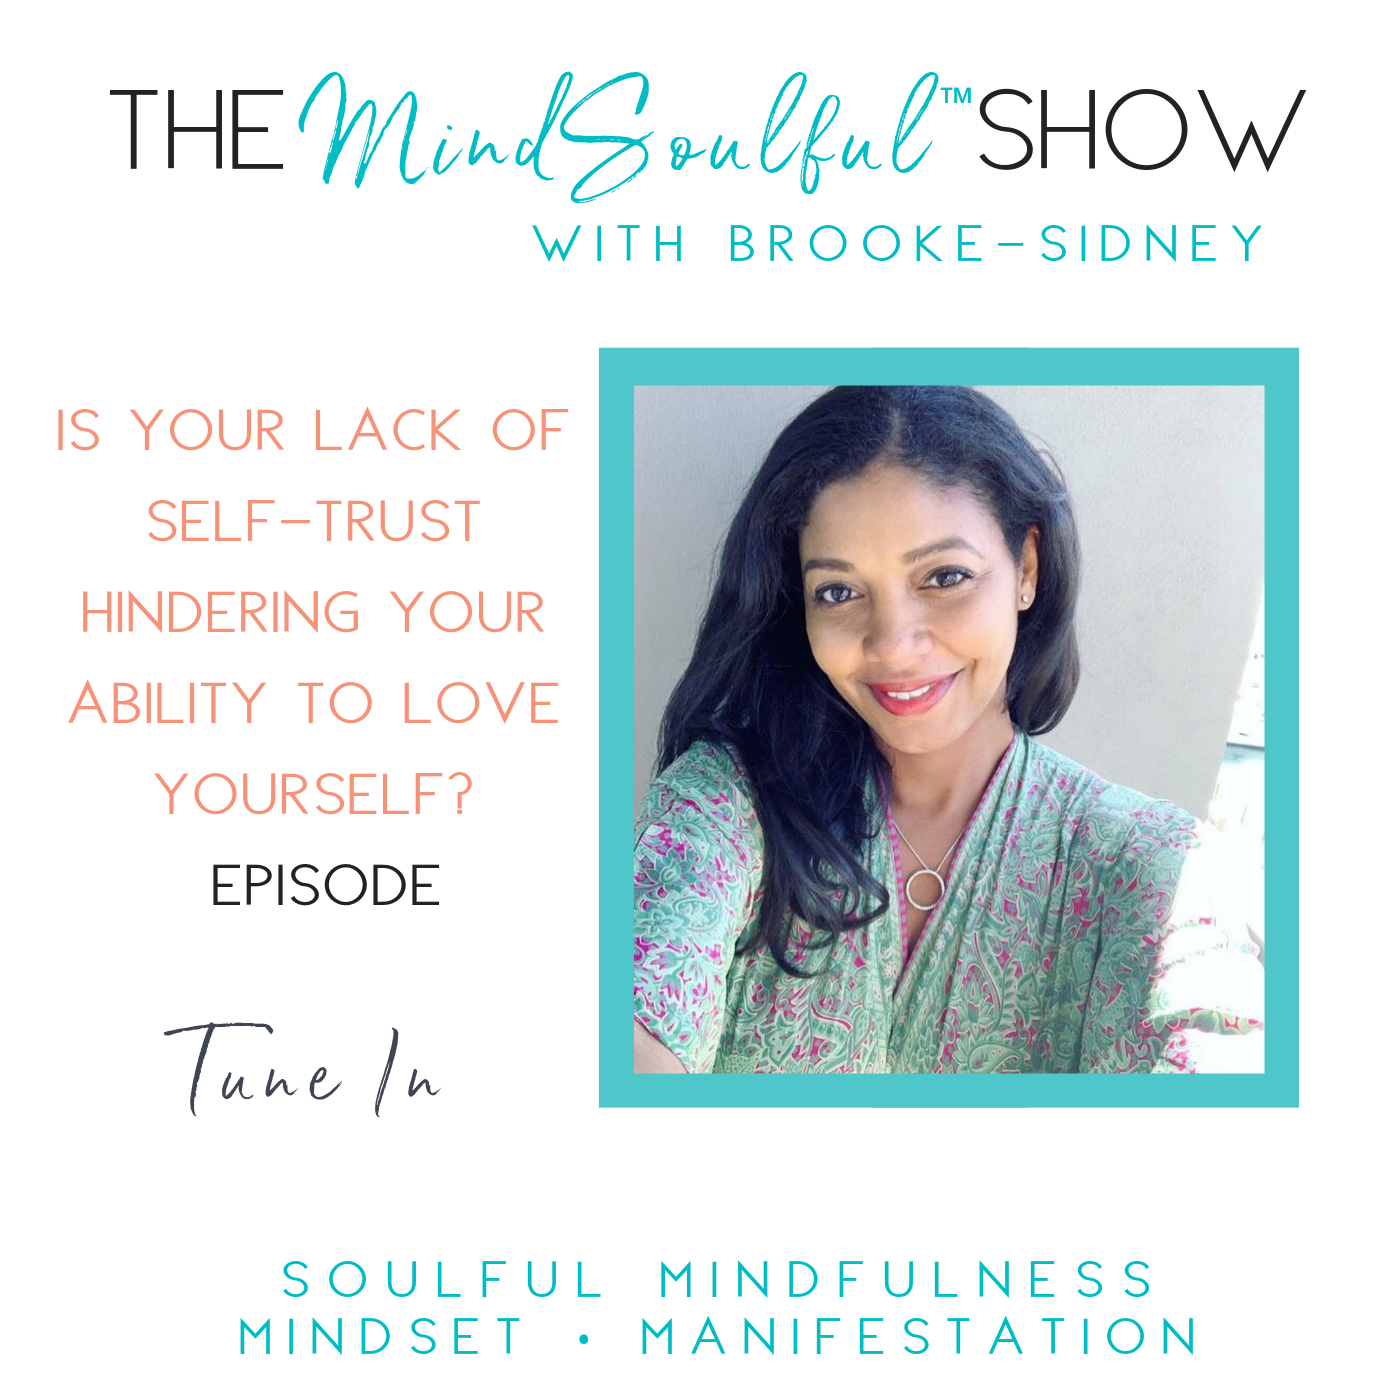 THE MINDSOULFUL SHOW - IS YOUR LACK OF SELF-TRUST HINDERING YOUR ABILITY TO LOVE YOURSELF Episode.png